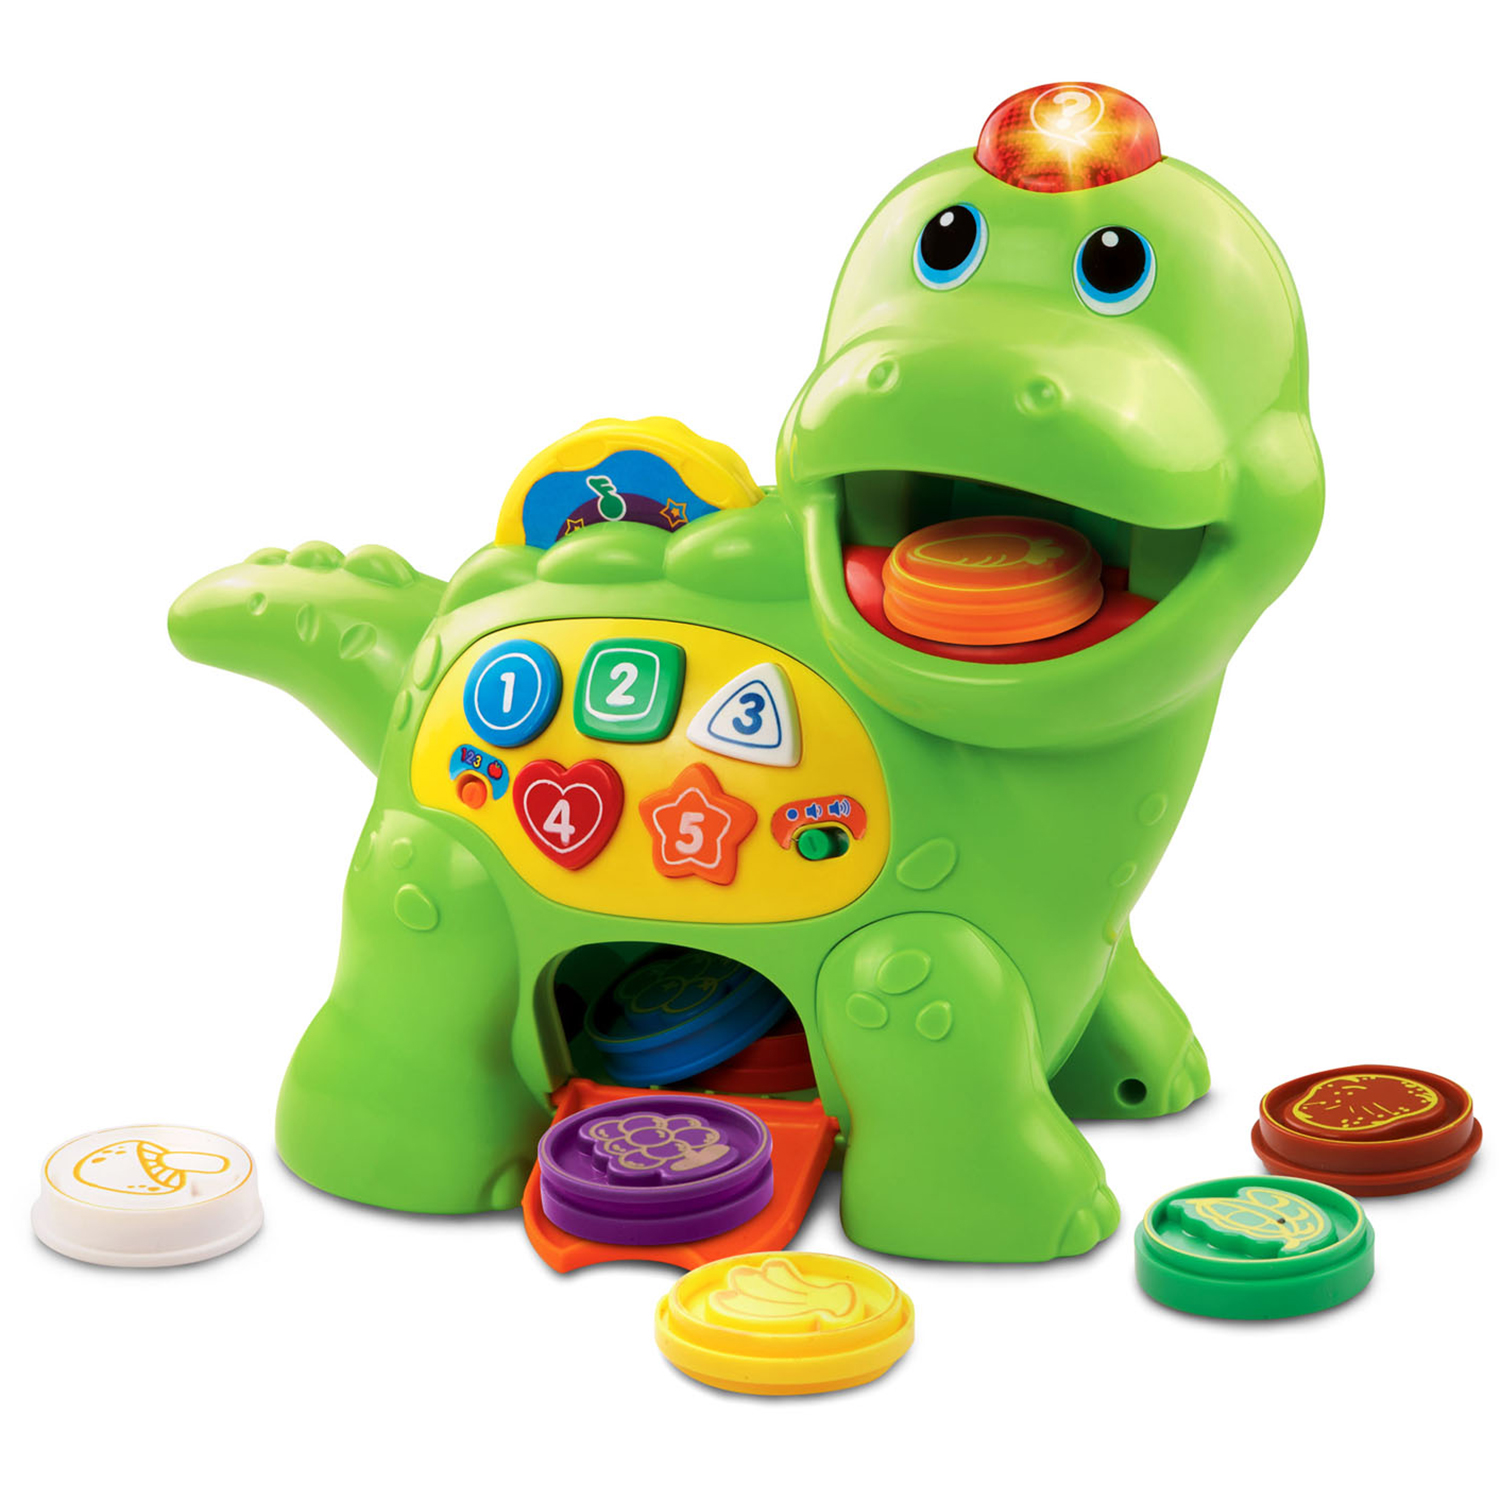 Best Toy for 12-Month-Olds: VTech Count and Chomp Dinosaur Learning Toy